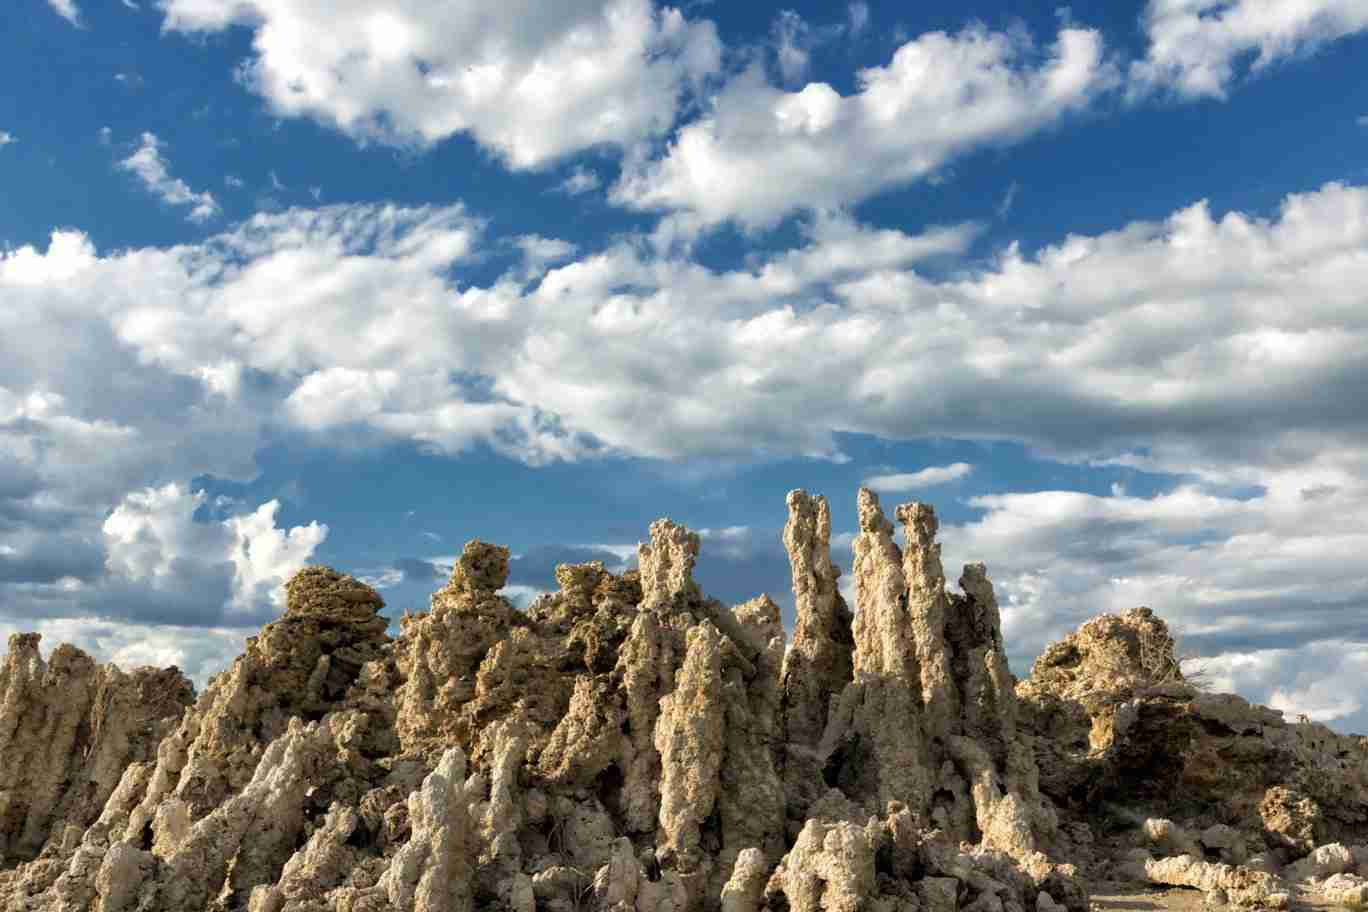 Print of Tufa Towers at Mono Lake